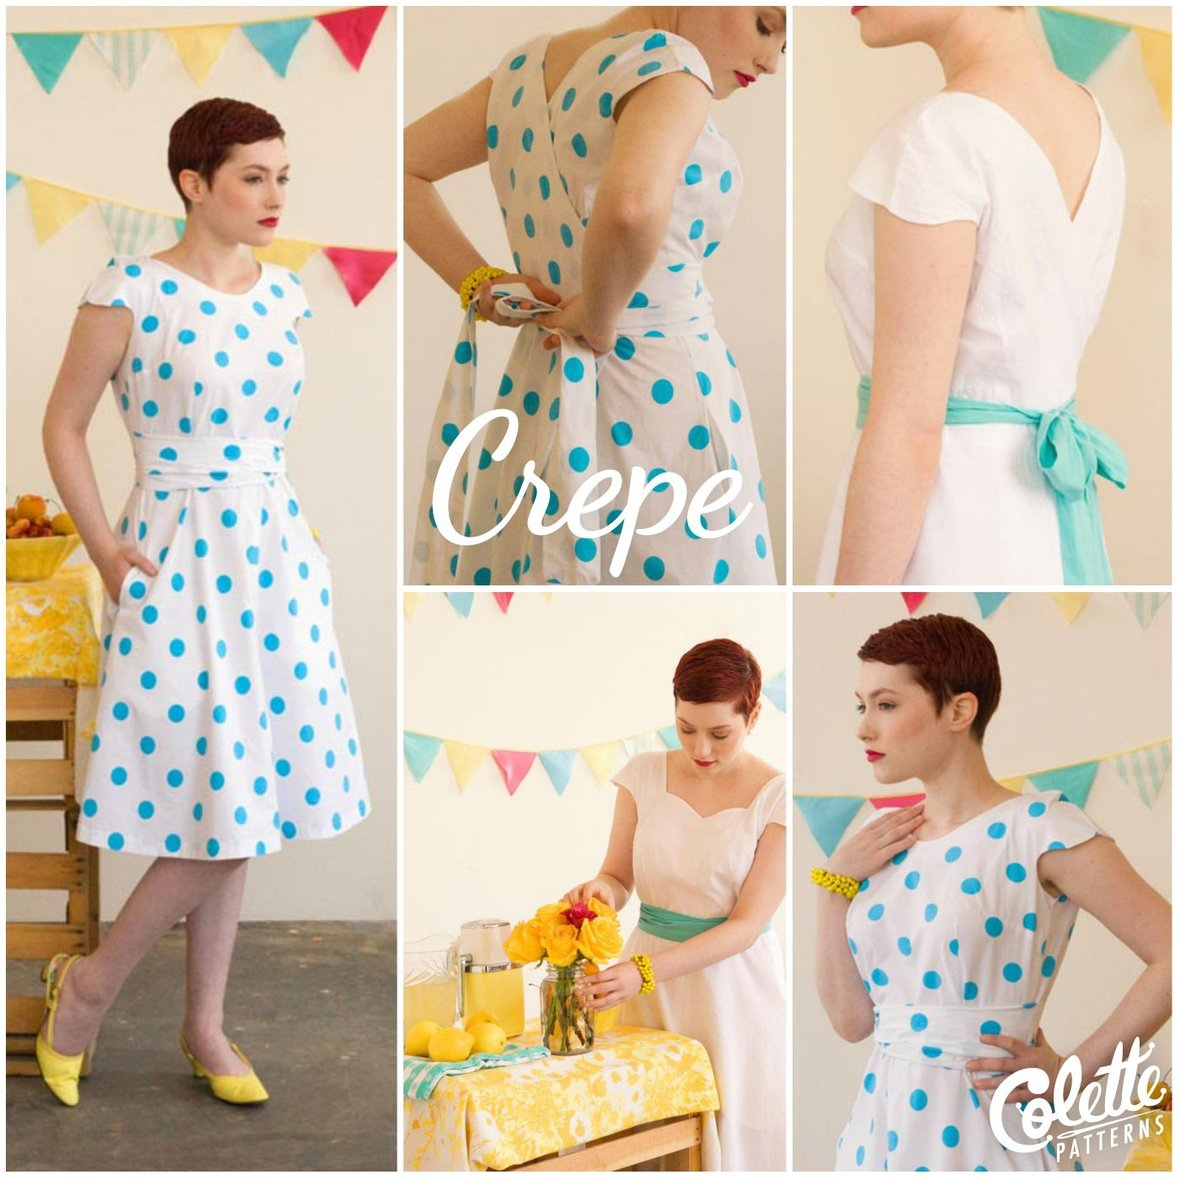 colette patterns crepe dress sewing pattern